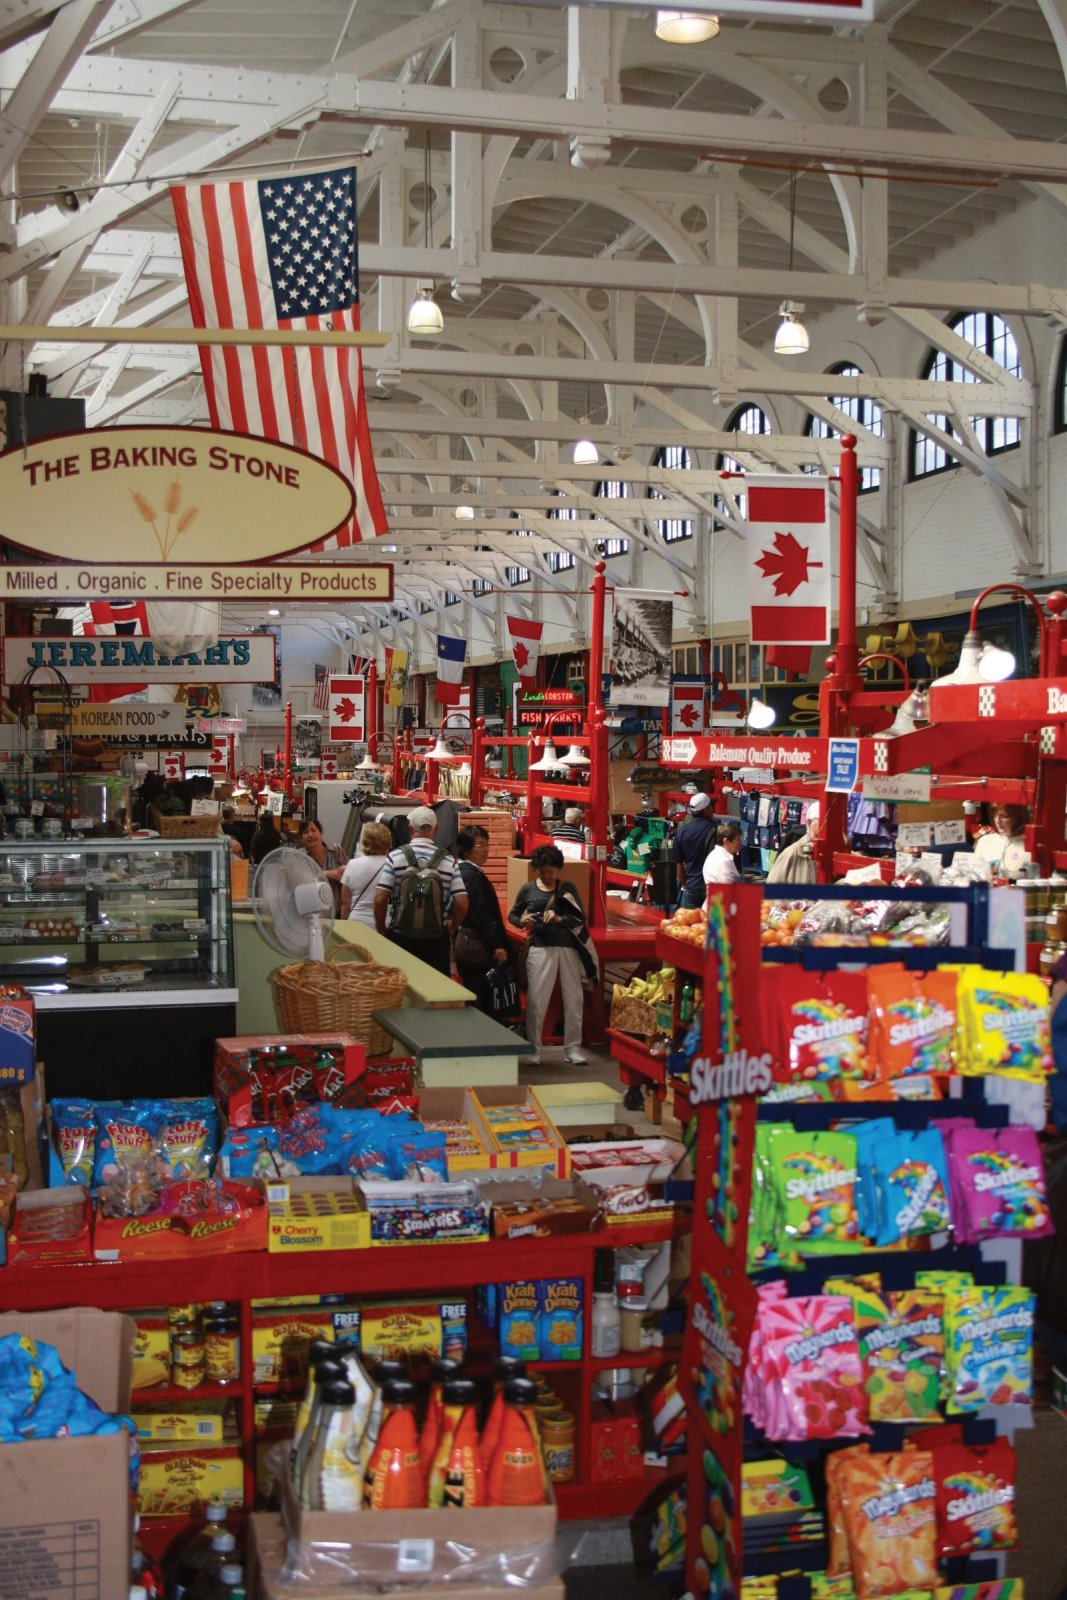 Enjoy the bustling sound, smells of spice and exotic foods of this colorful place, the Saint John City Market!